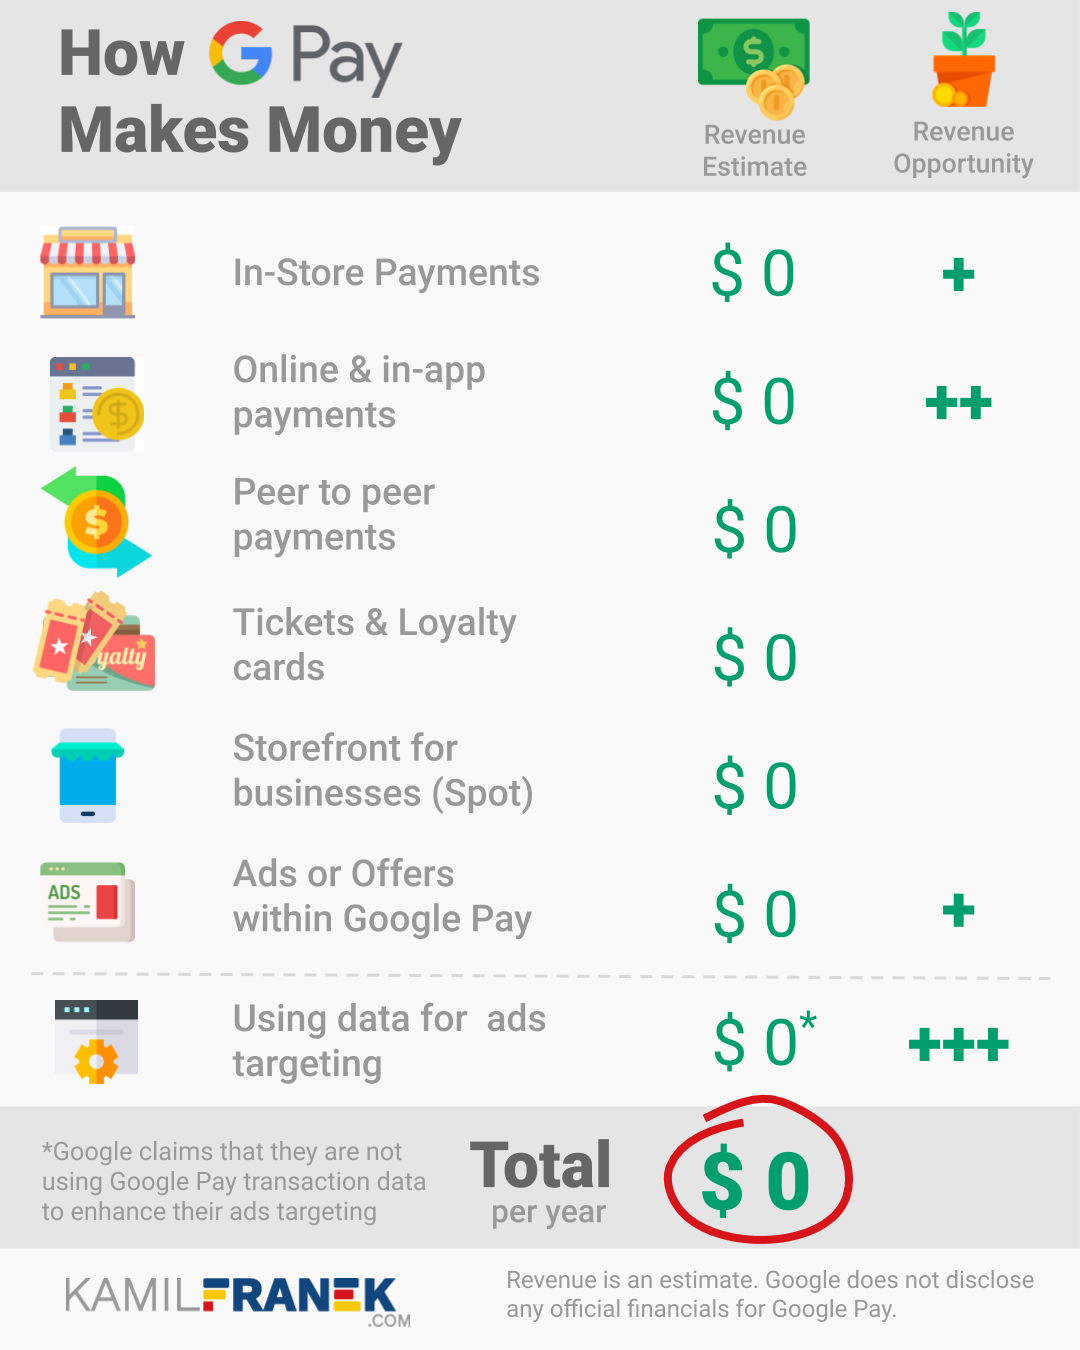 An infographic showing different ways how Google Pay might make money now and in the future